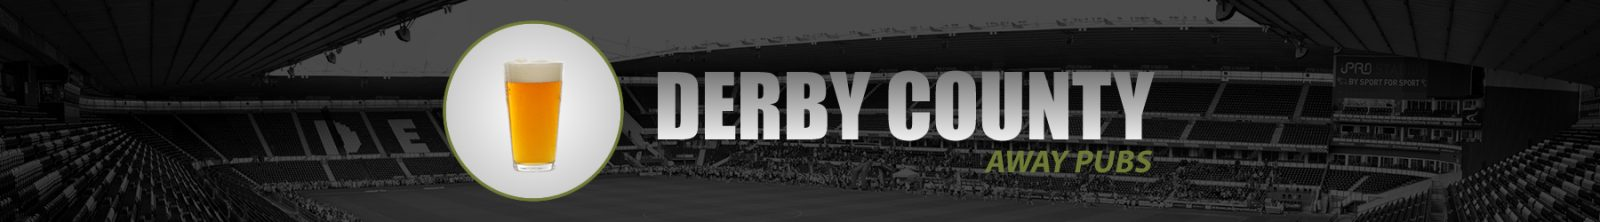 Derby County Away Pubs